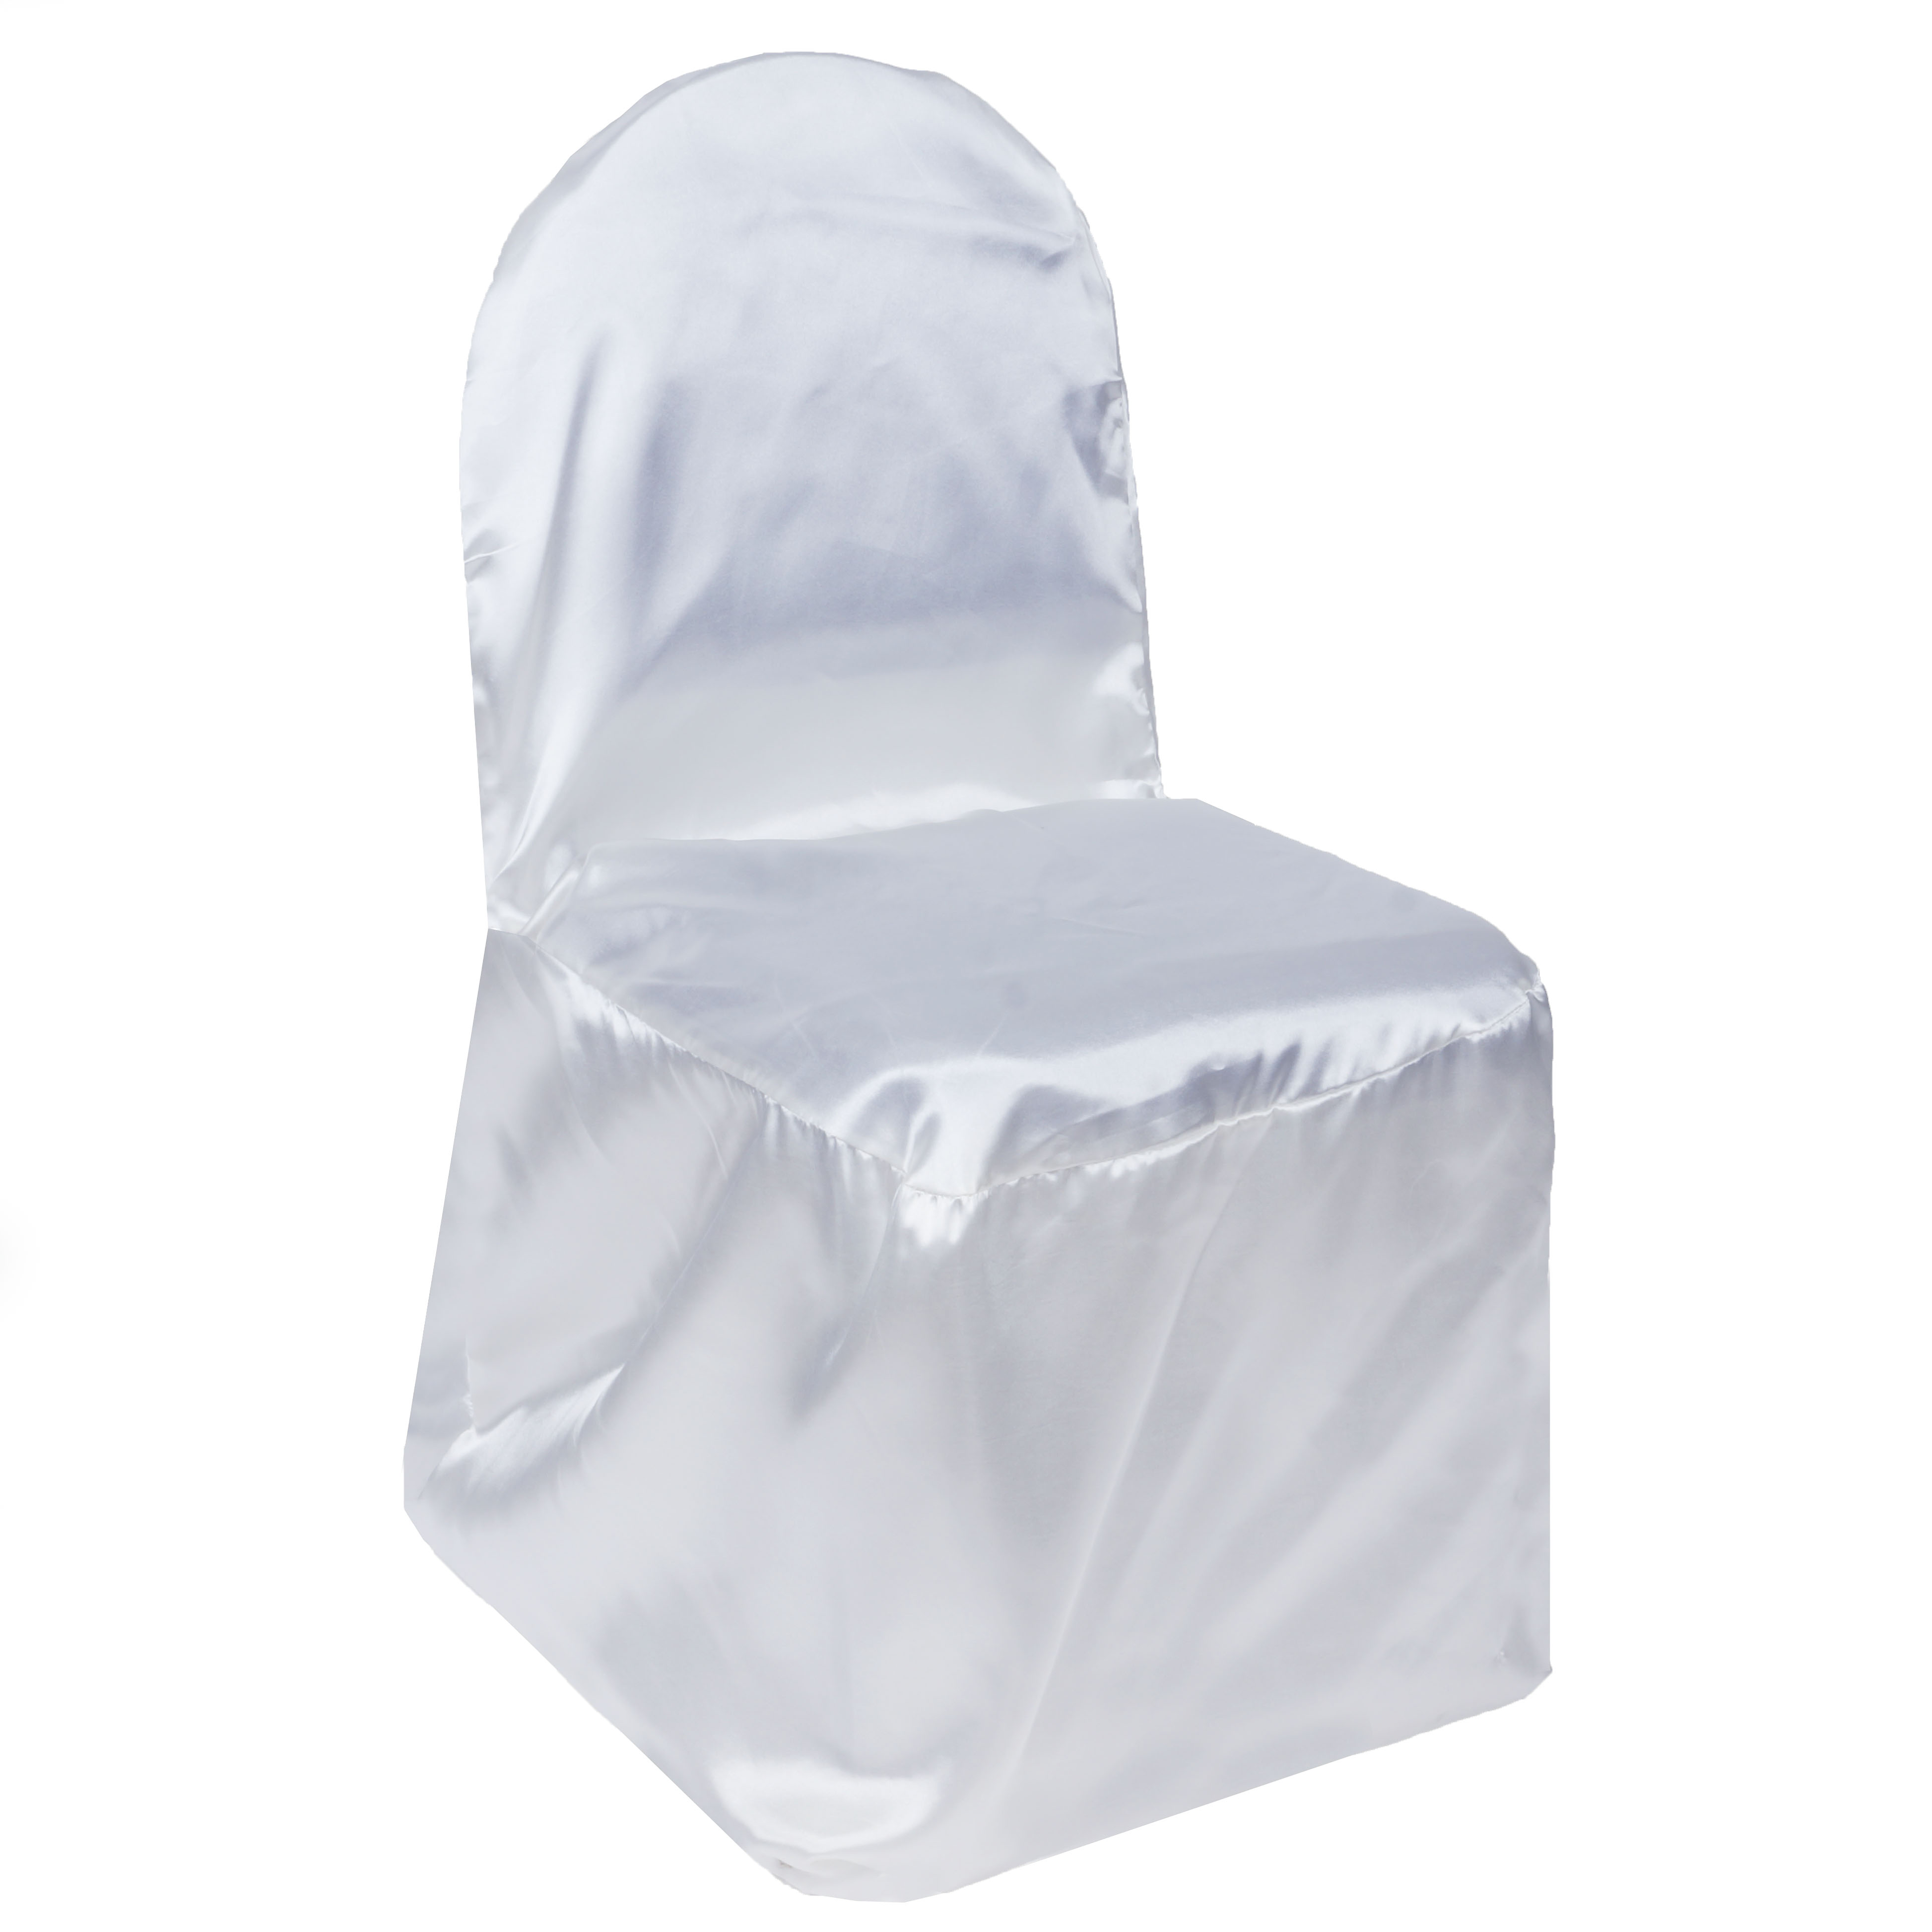 100 pcs SATIN BANQUET CHAIR COVERS Wholesale Wedding Party